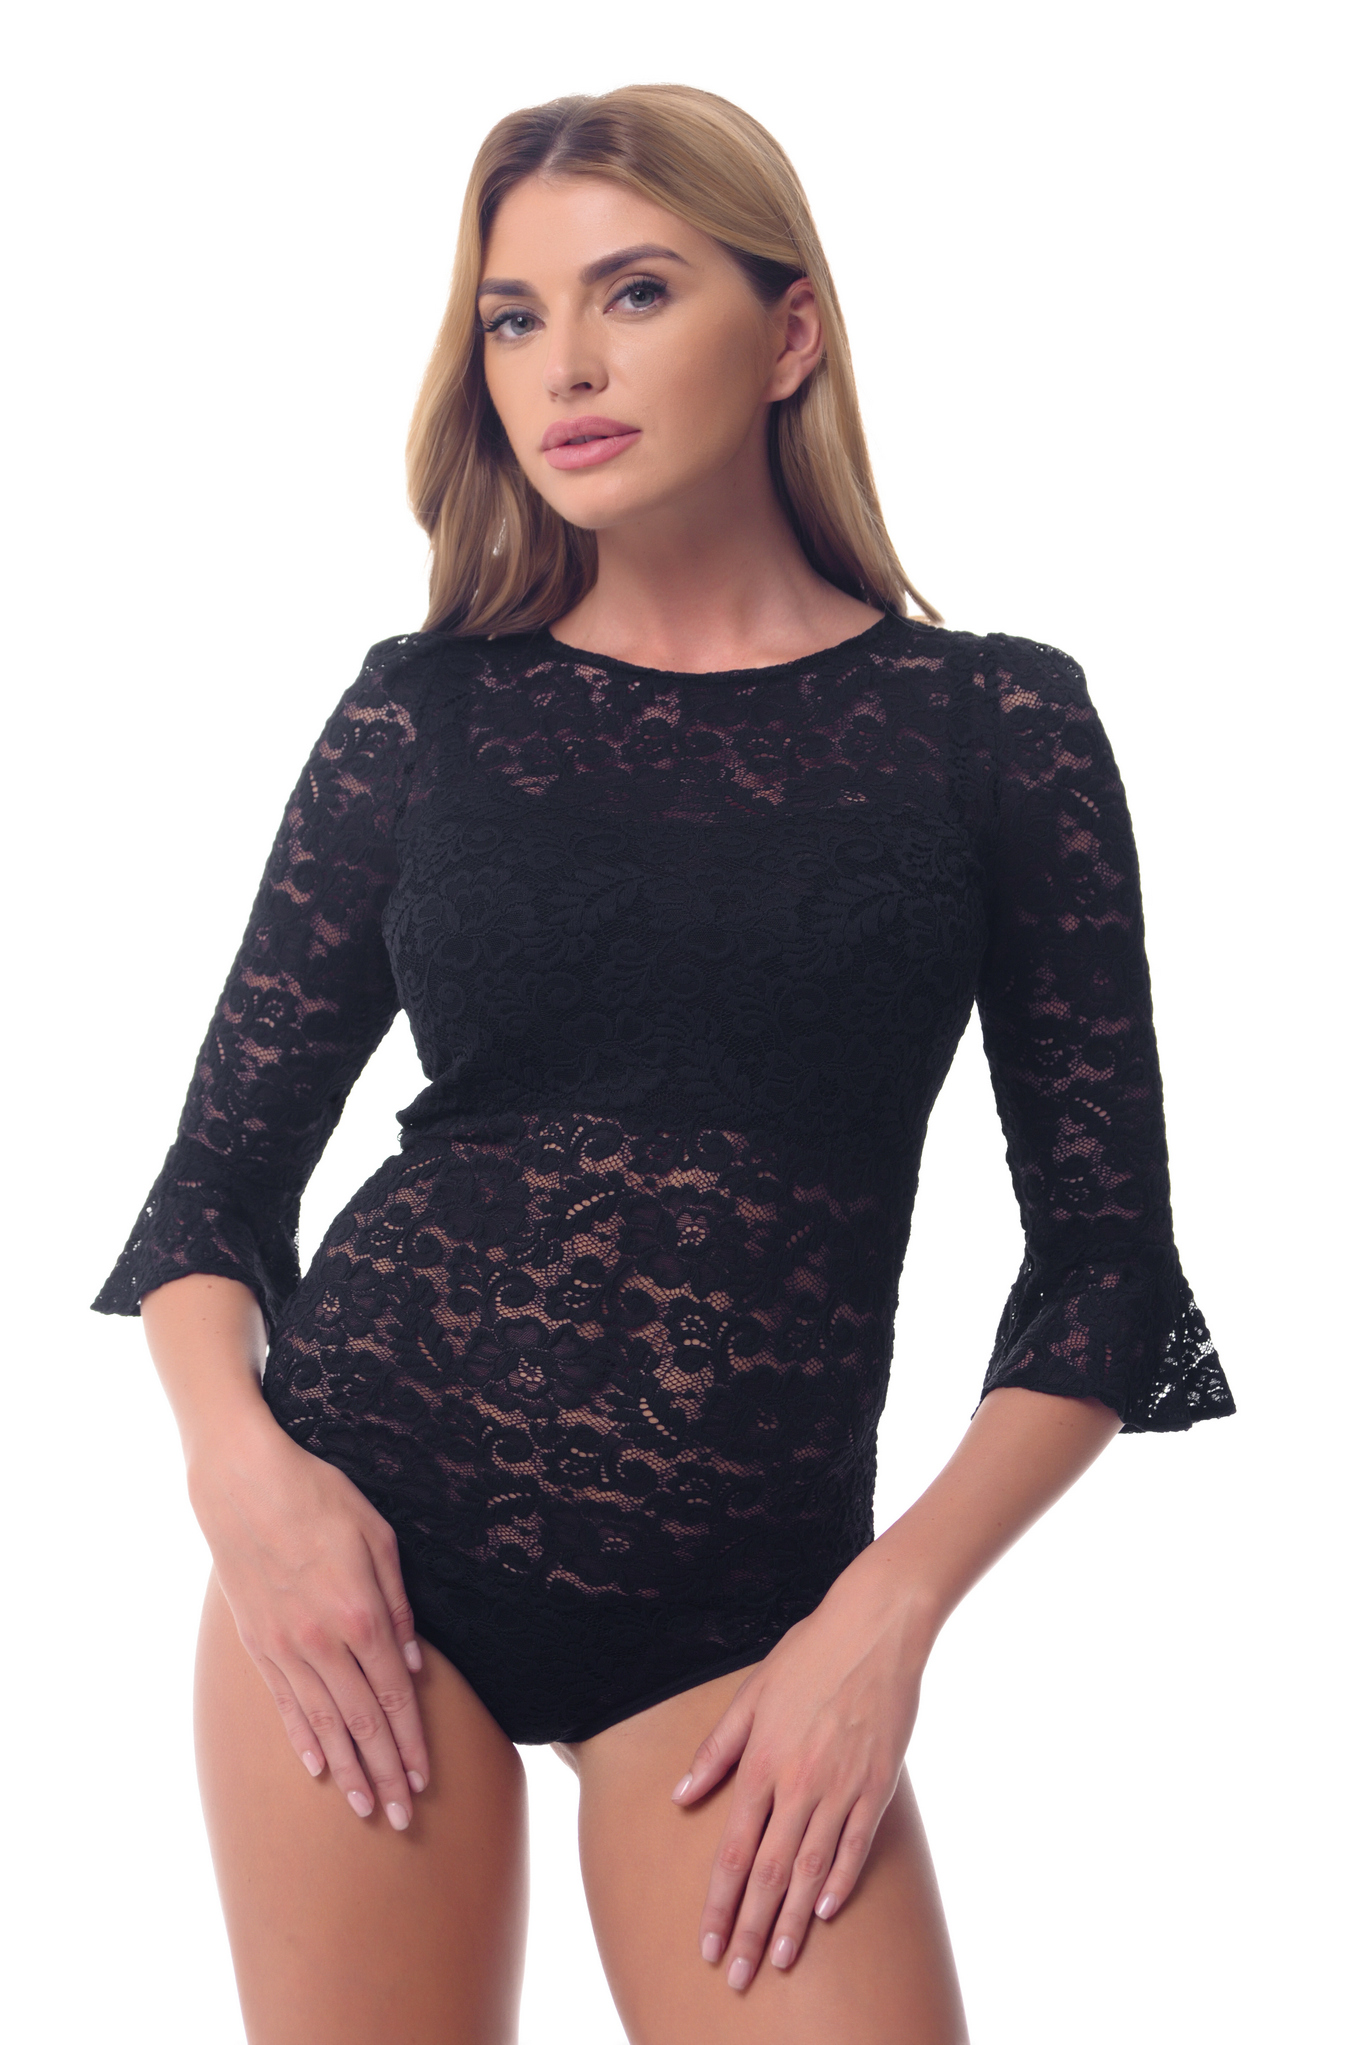 Buy Women Black blouse body Lace Guipure Elegant Business Office clothing by Arefeva